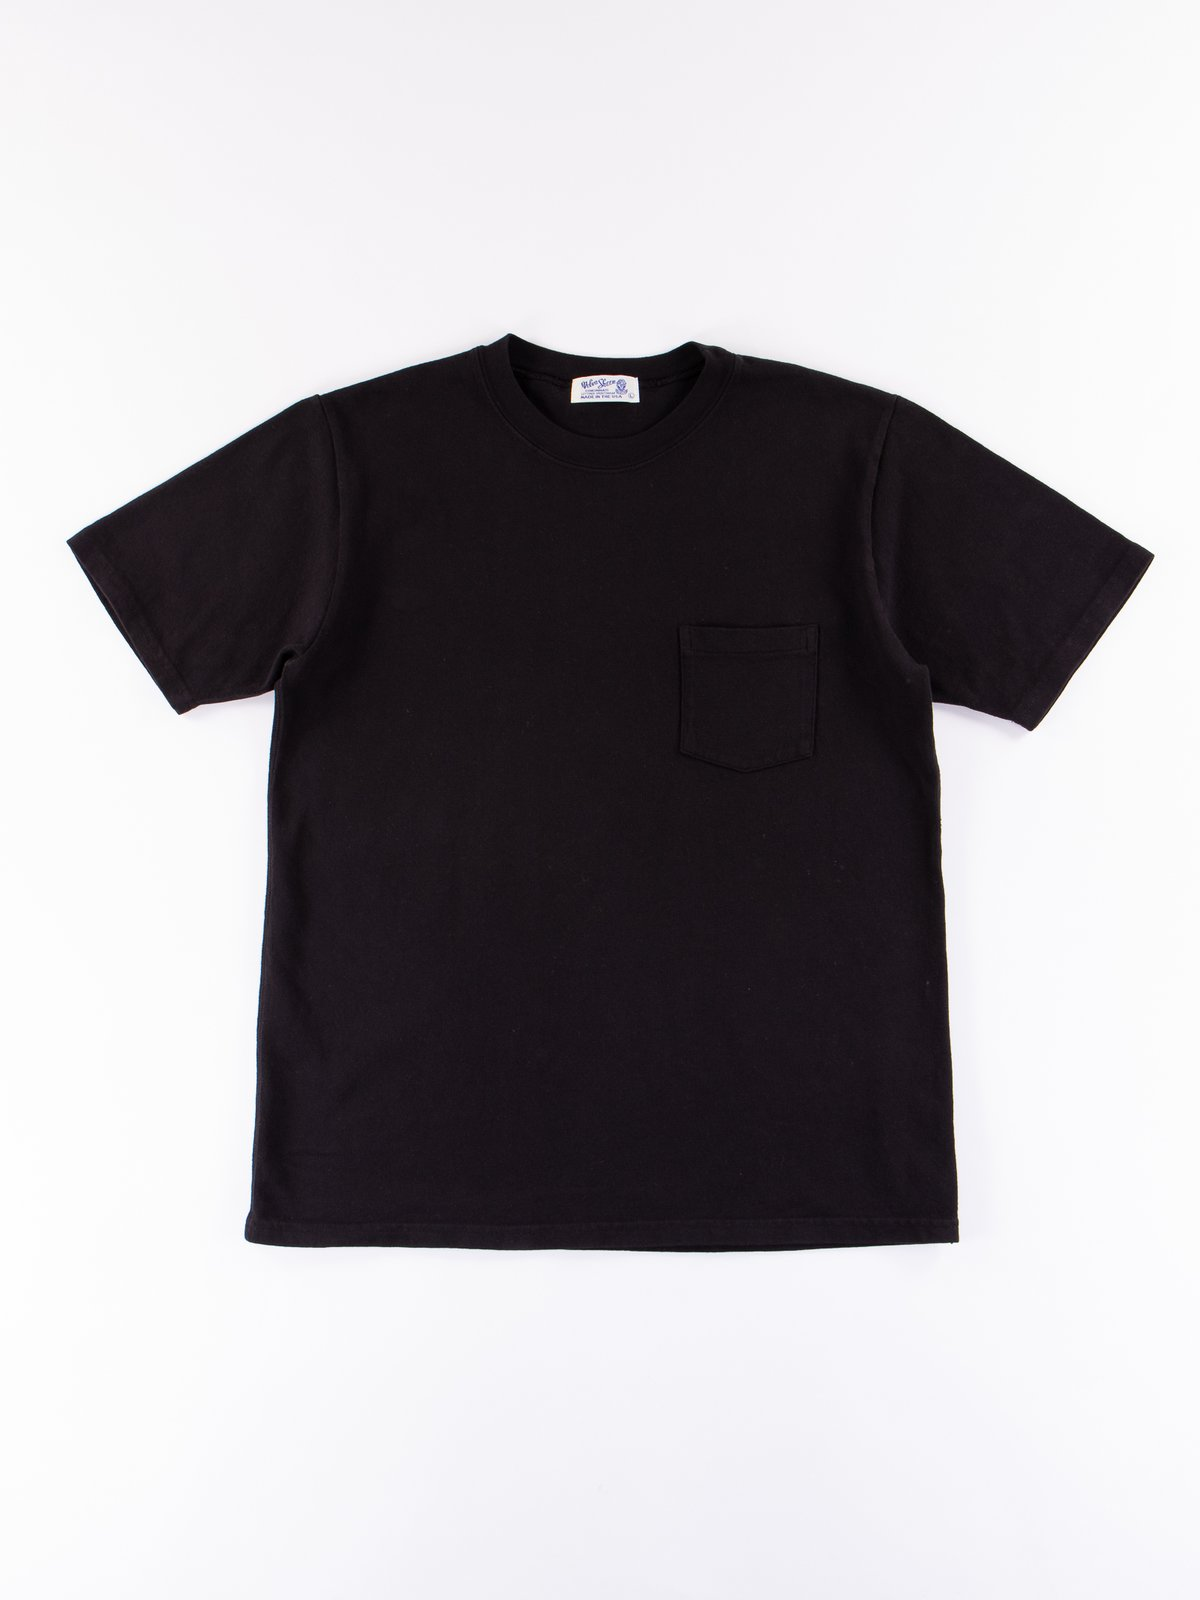 Black Heavy Oz Pocket Tee - Image 1